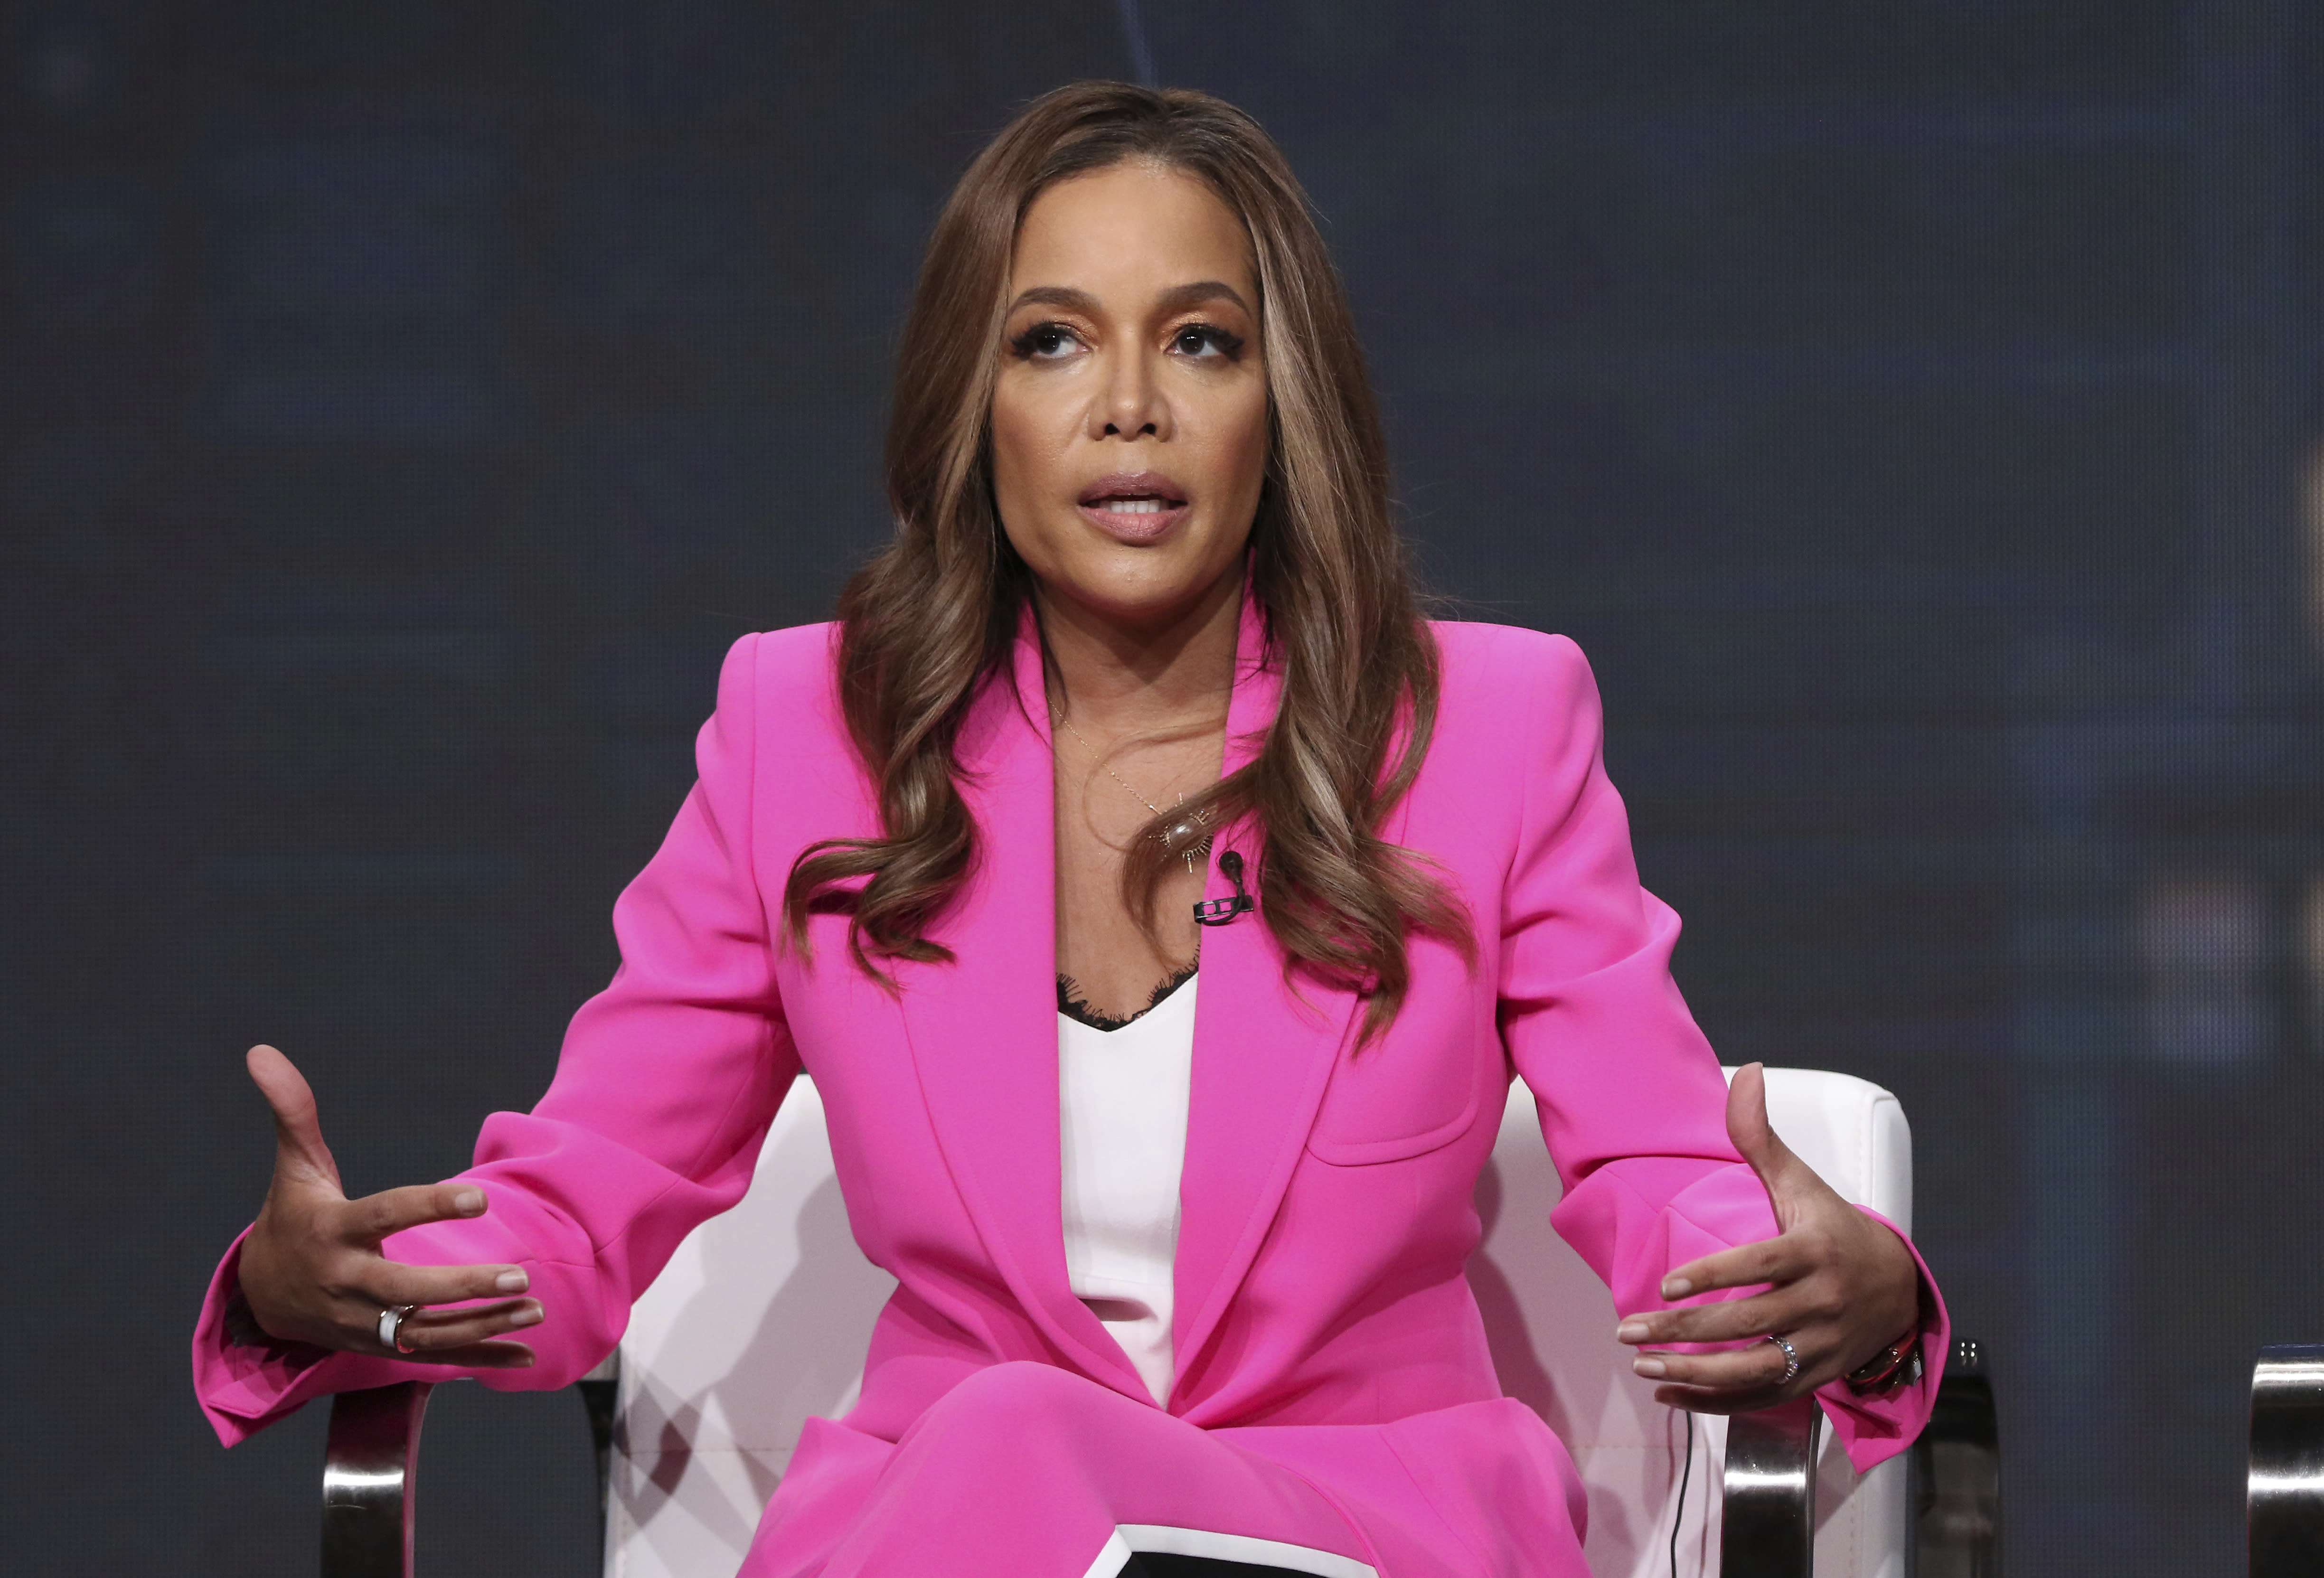 Sunny Hostin responds to ABC News exec allegedly calling her 'low rent': 'Systemic racism touches everything' 1